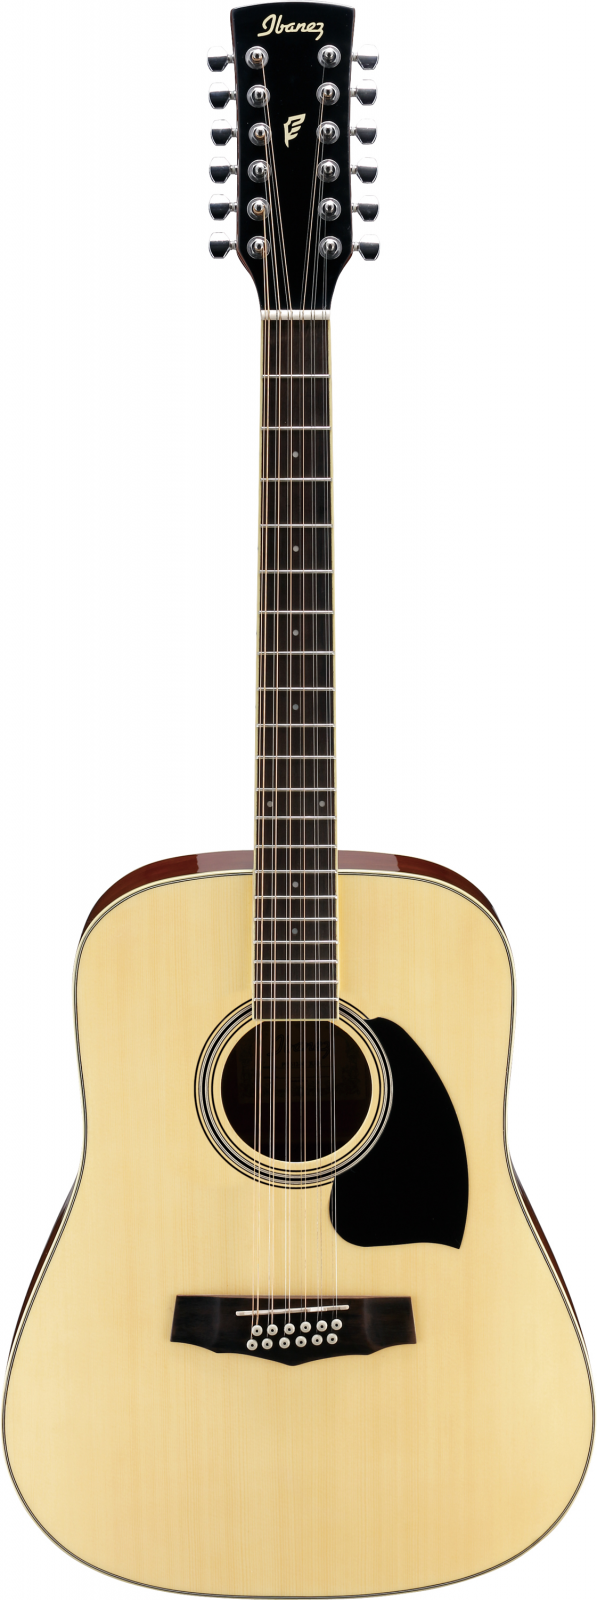 Ibanez Performance PF1512-NT 12 Str Acoustic Guitar - Natural High Gloss